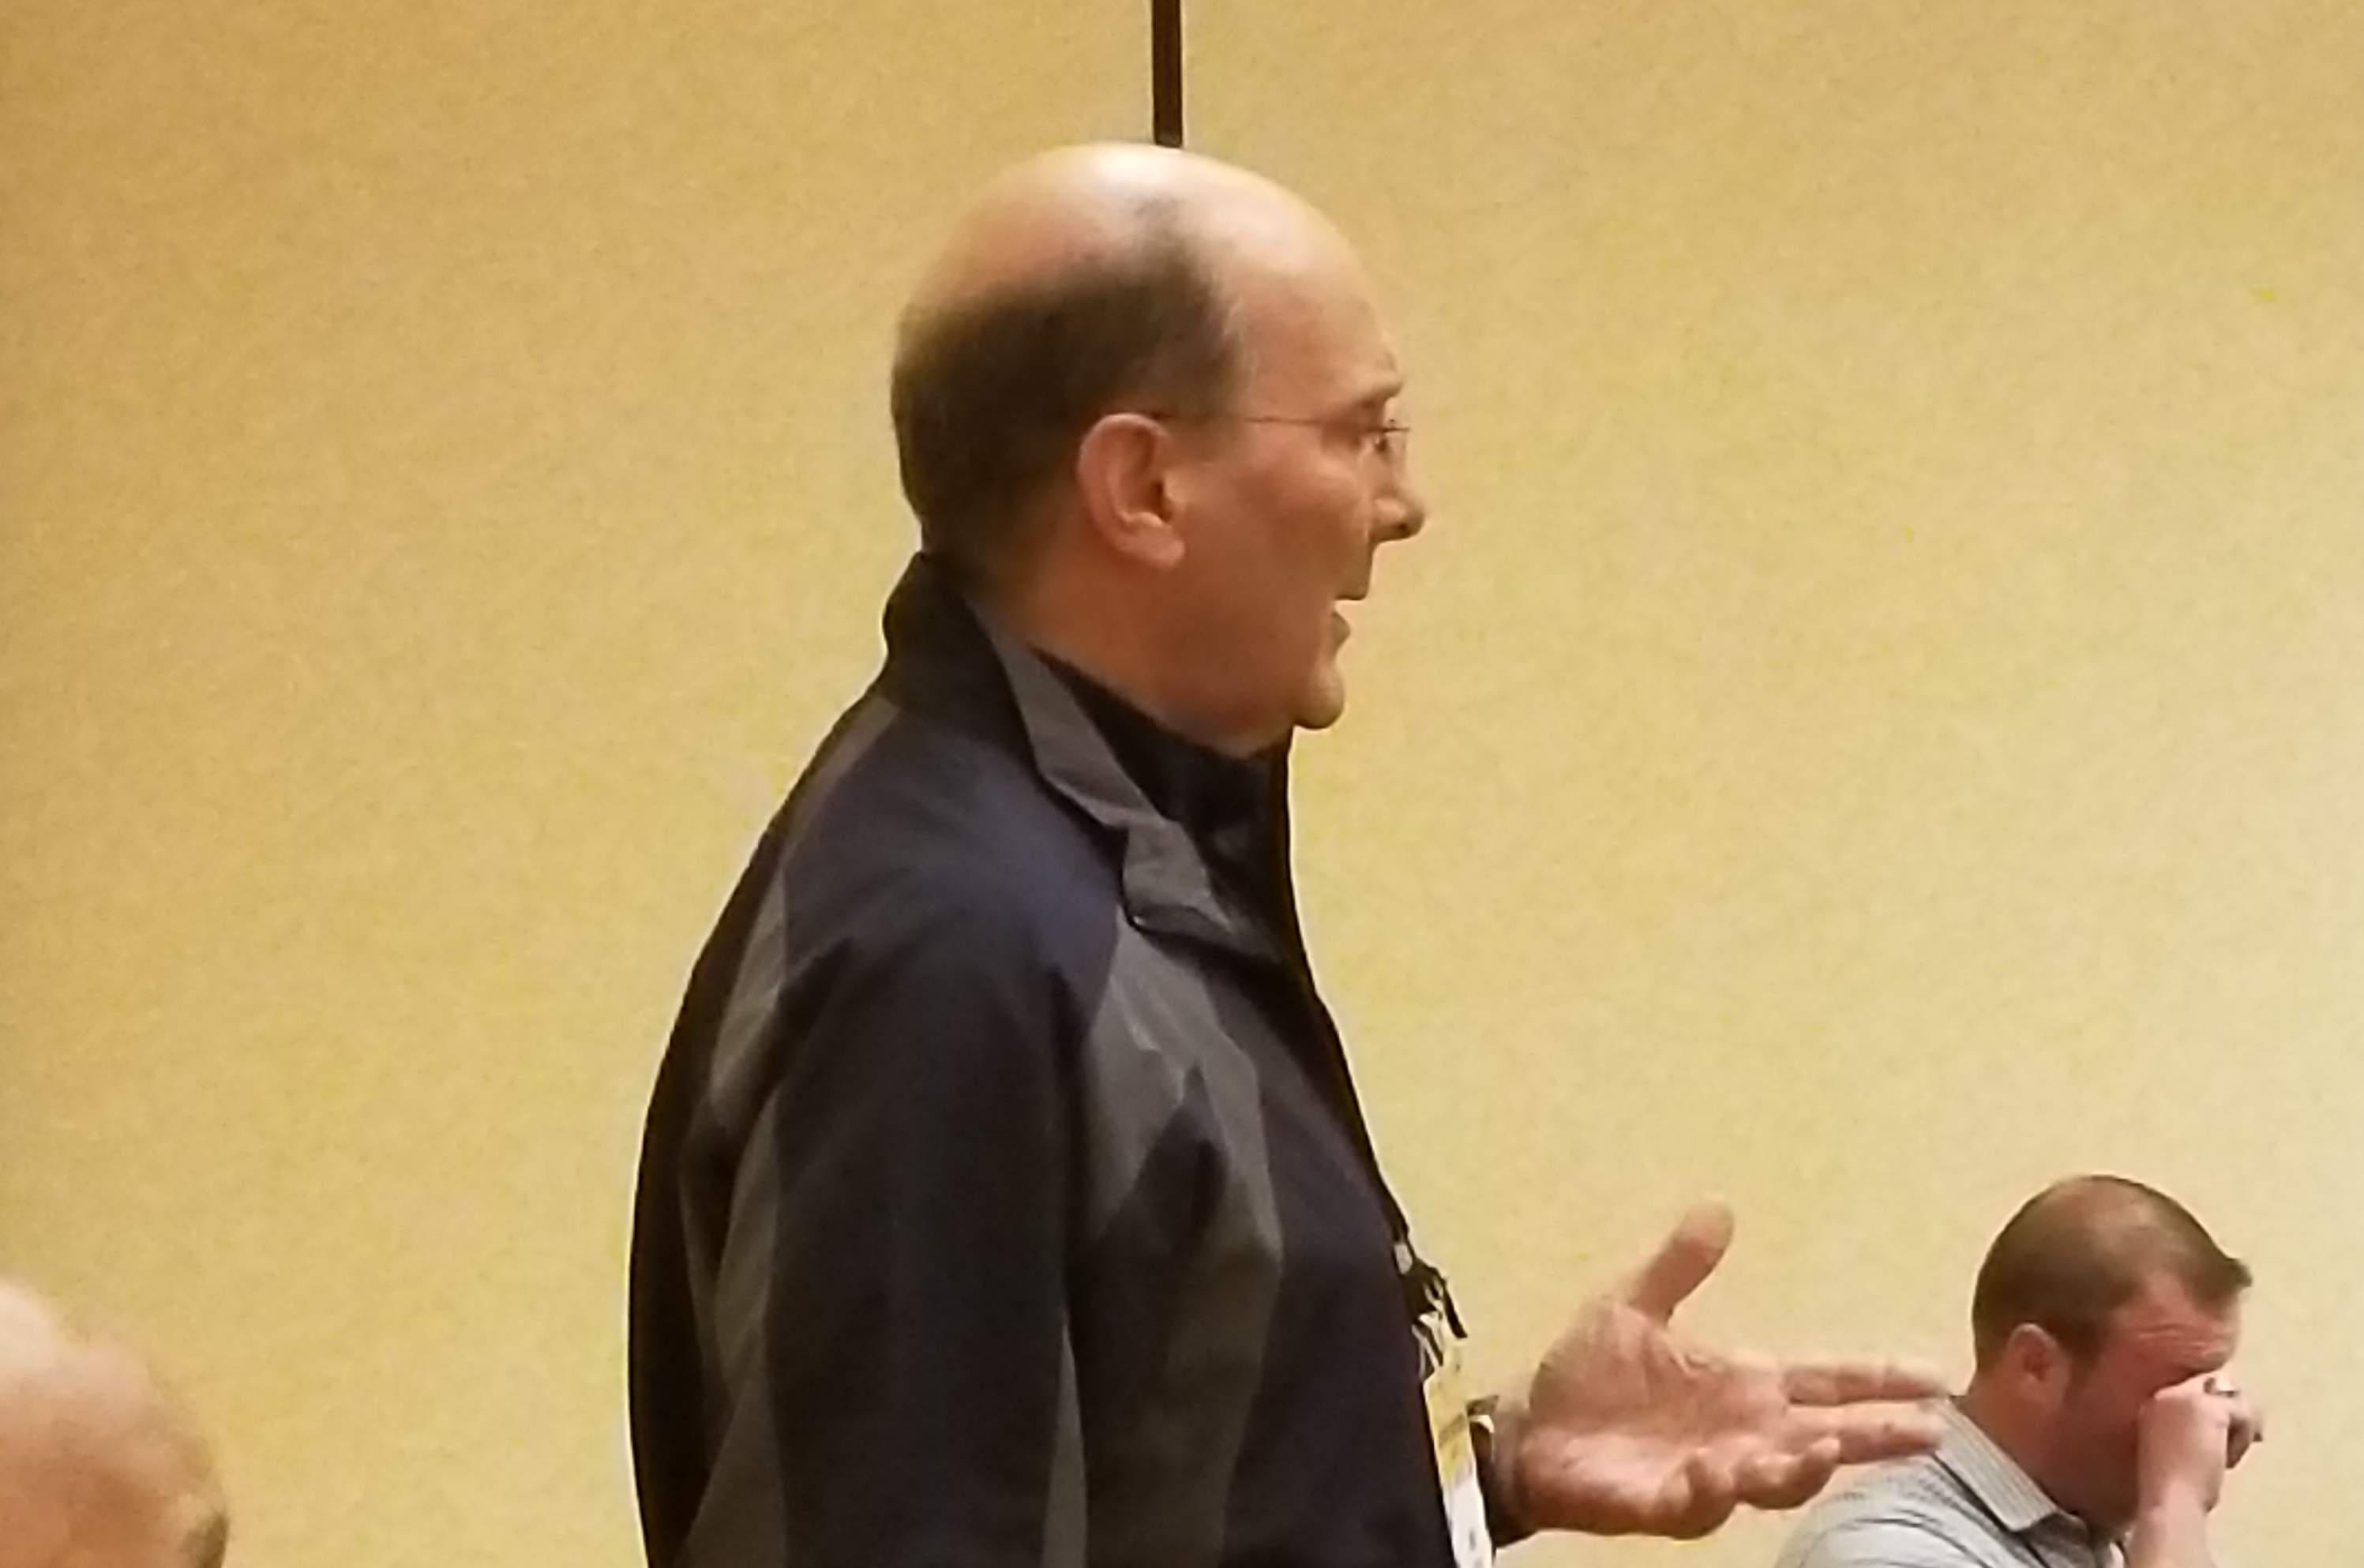 July 14, 2017 (DALLAS,TX) - Former NFL official Tony Veteri speaking with NFL officiating candidates at the 2017 NFL Officiating Clinic. (Photo by: Locker-Report.com)